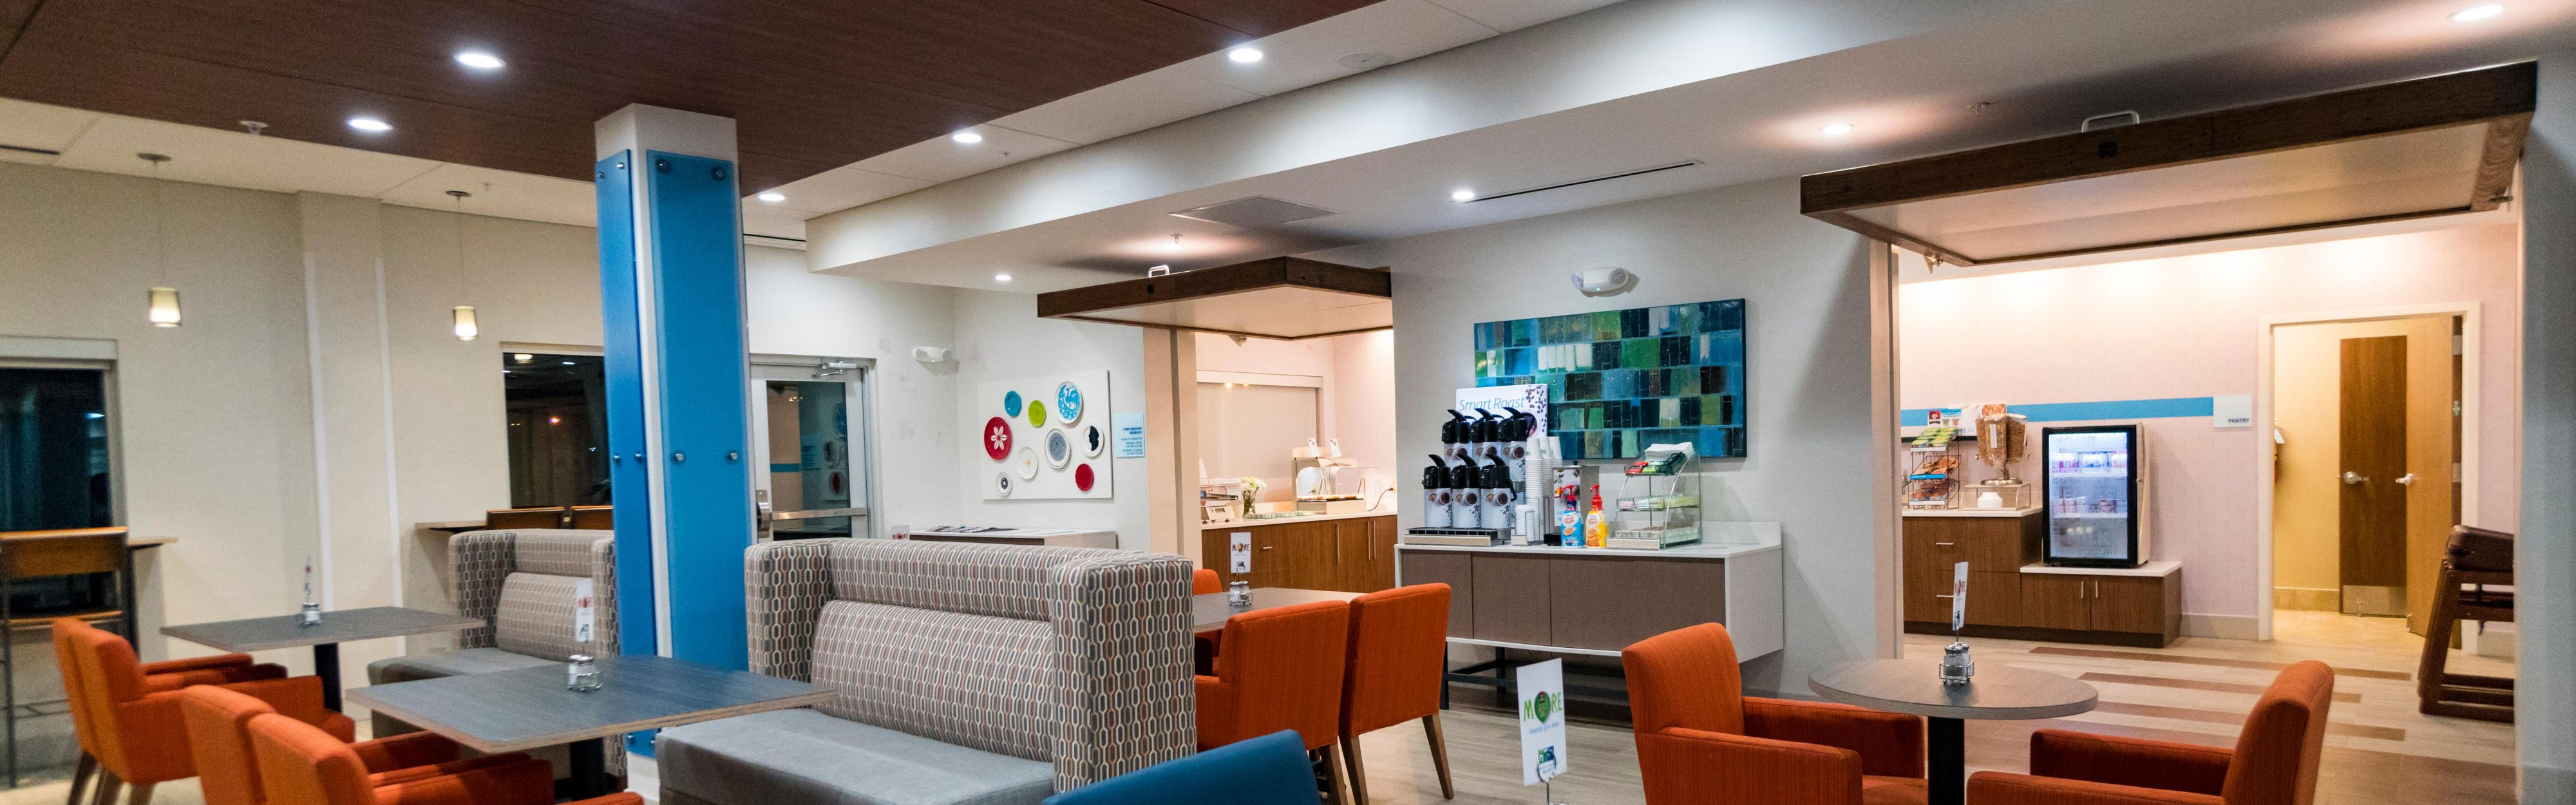 Holiday Inn Express & Suites Southaven Central - Memphis image 3